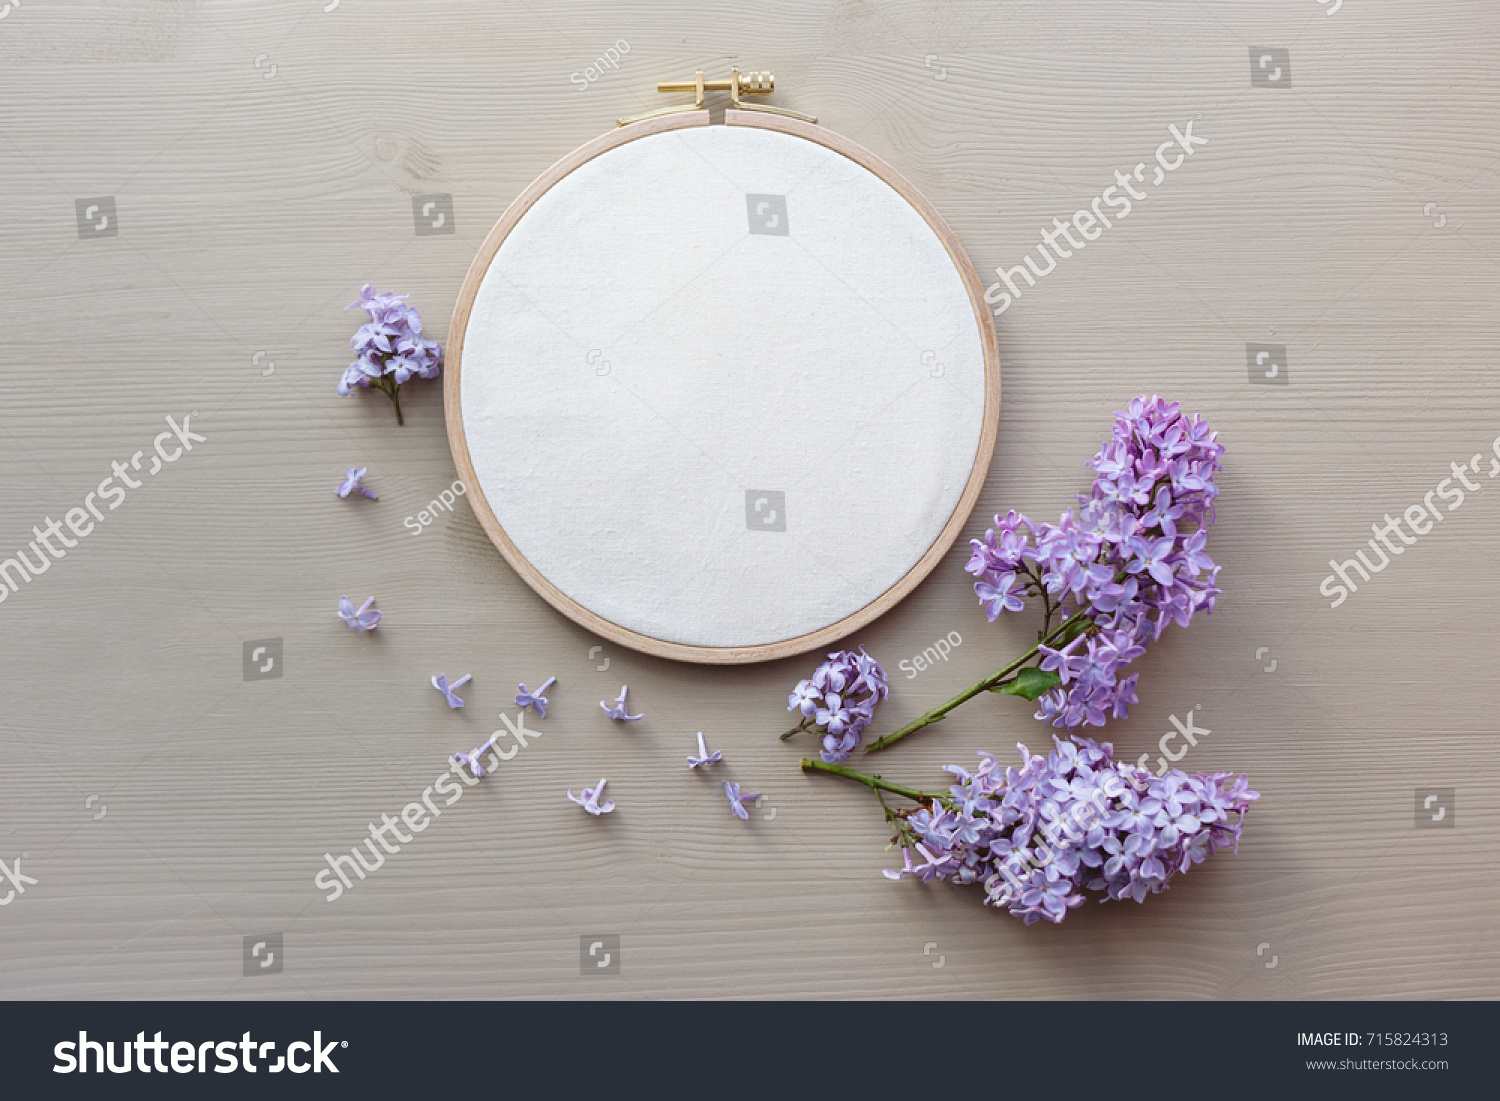 Flat lay top view photo mockup stock